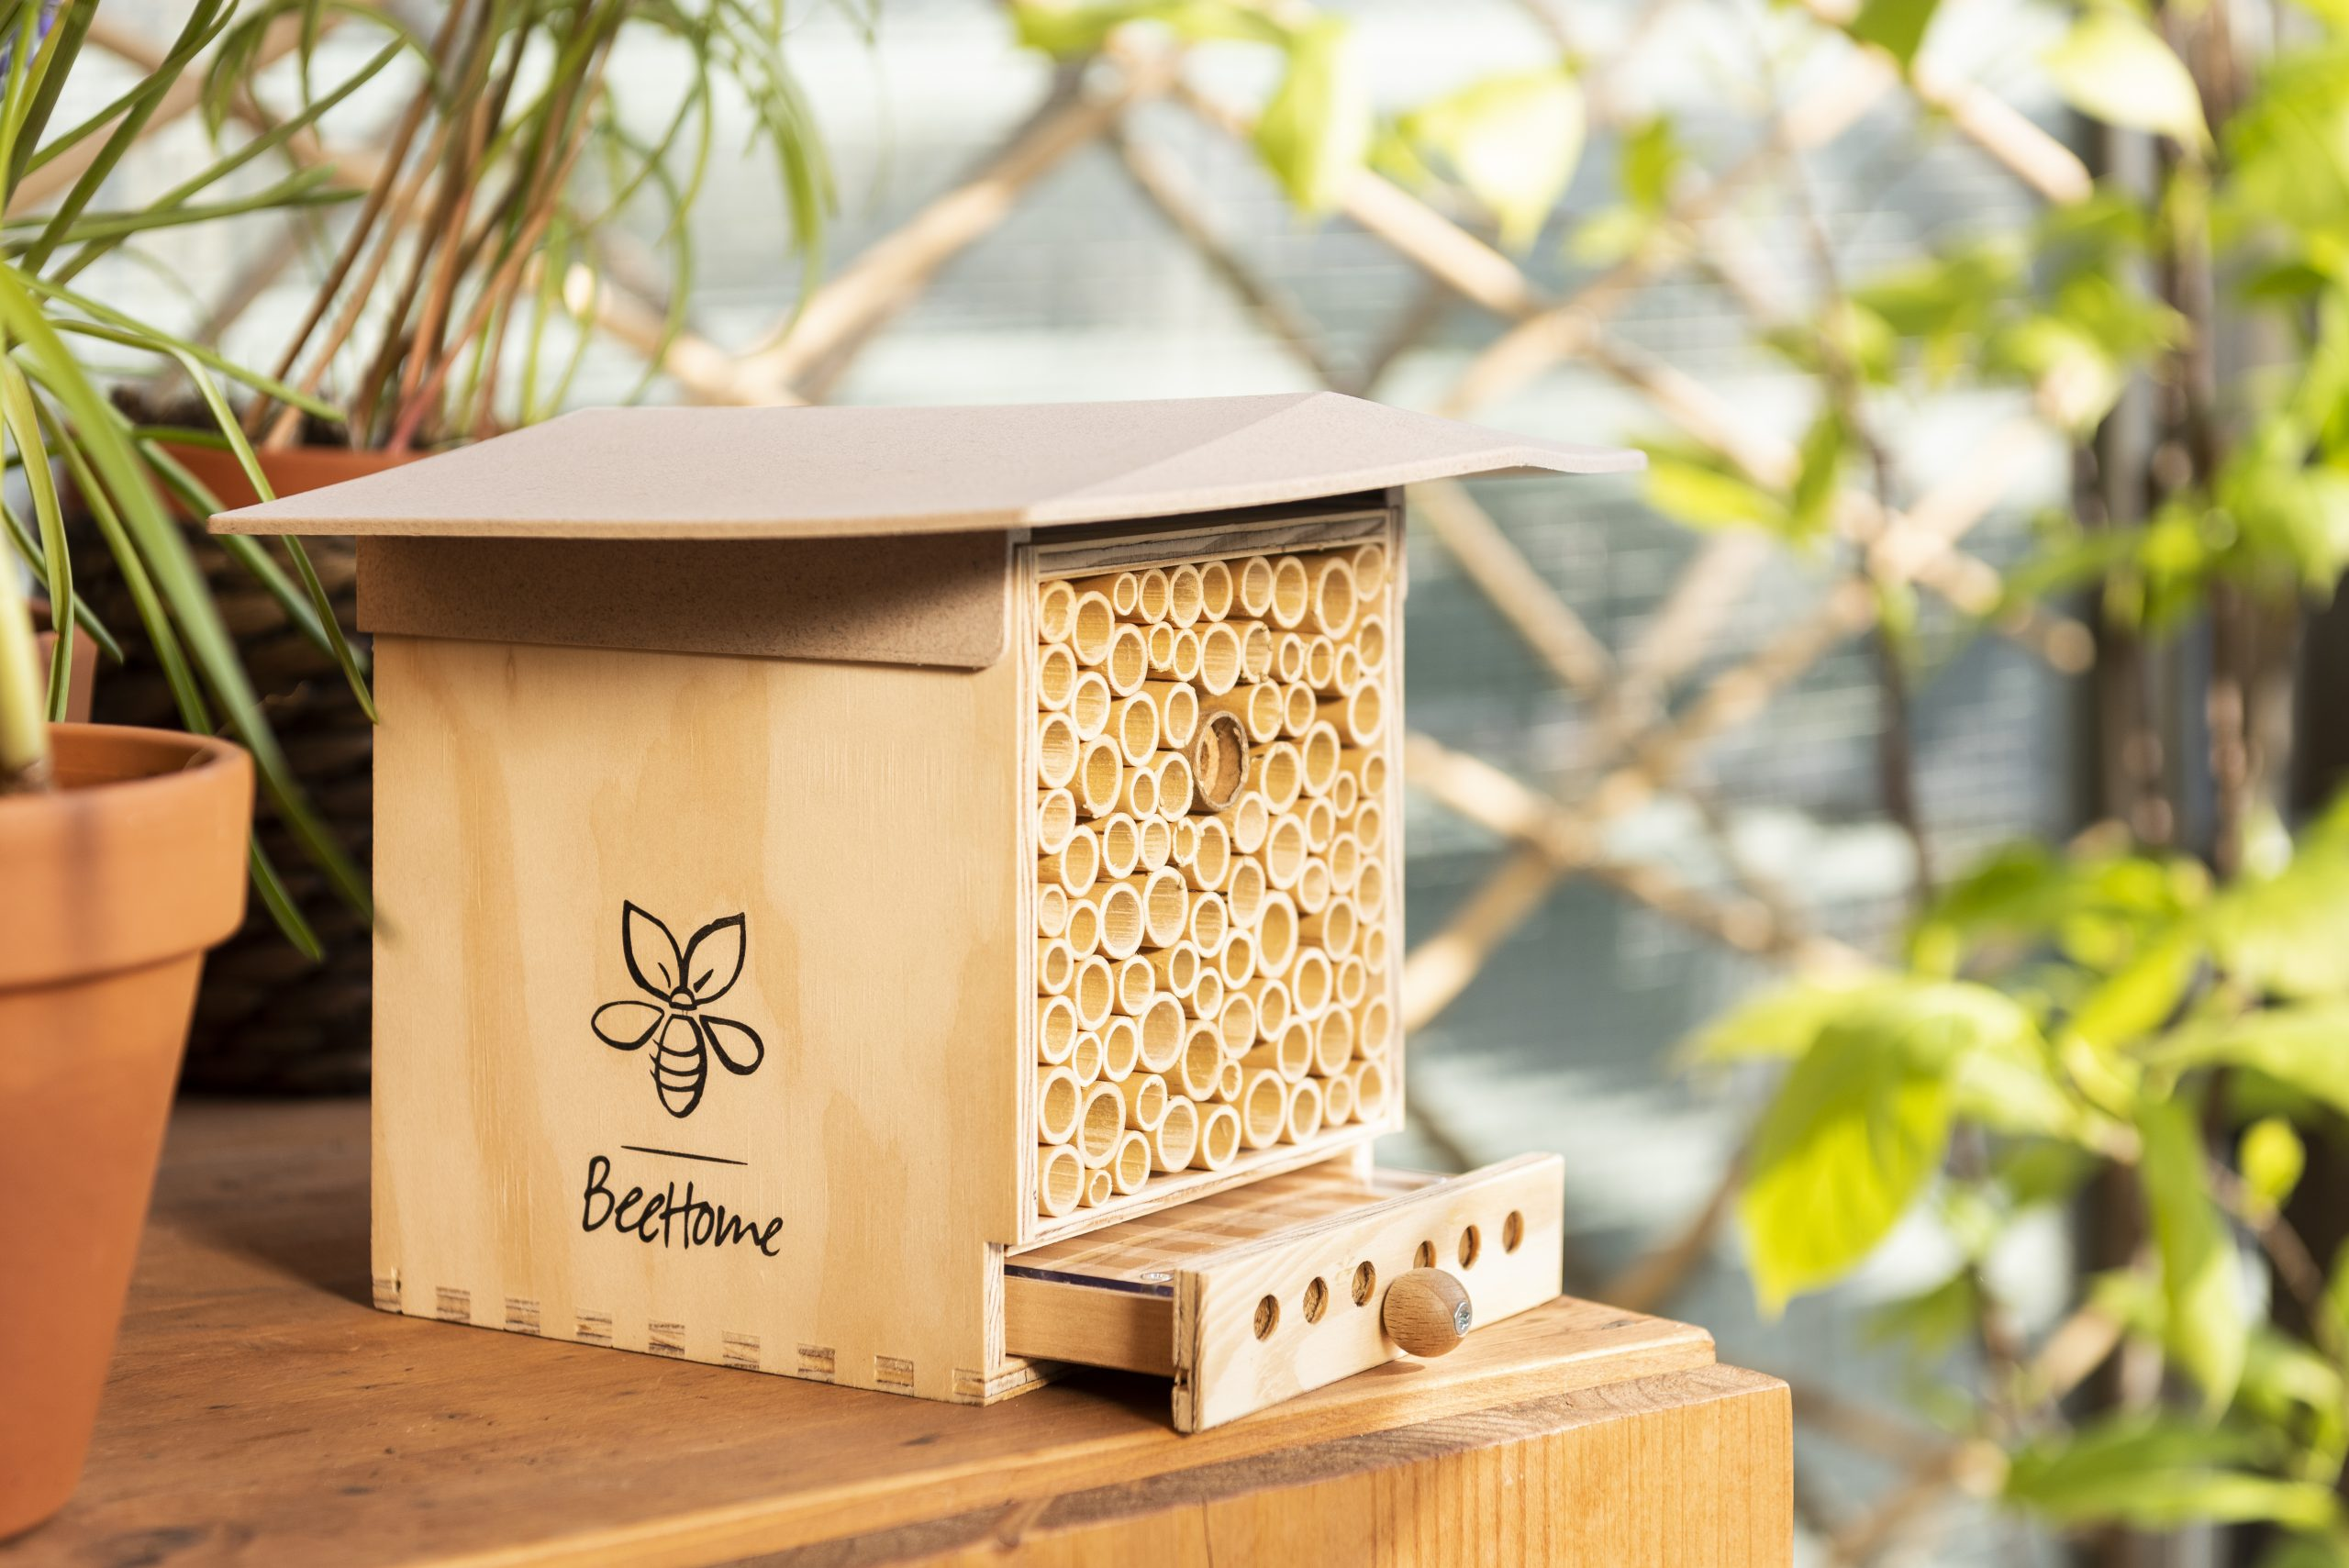 BeeHome Observer 03 1 scaled - Des maisonettes pour adopter des abeilles sauvages inoffensives